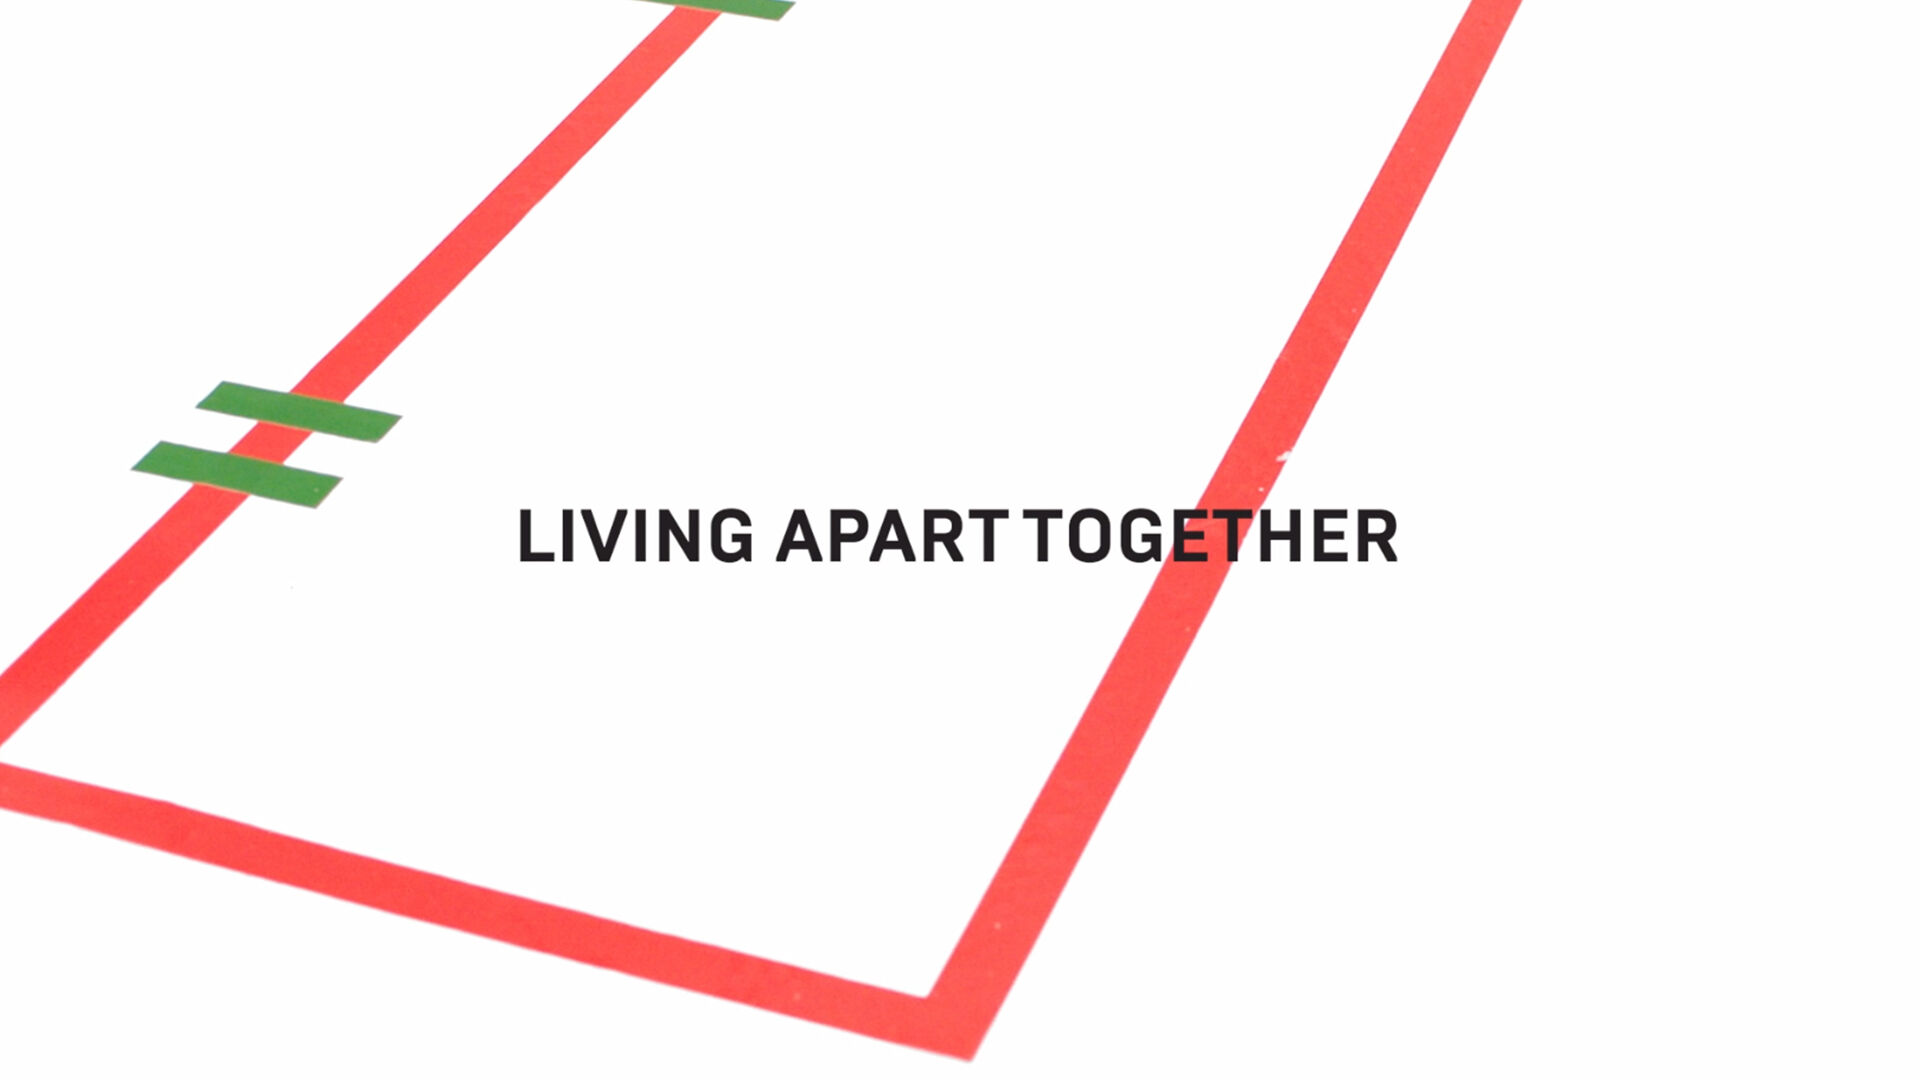 Stories: Living Apart Together